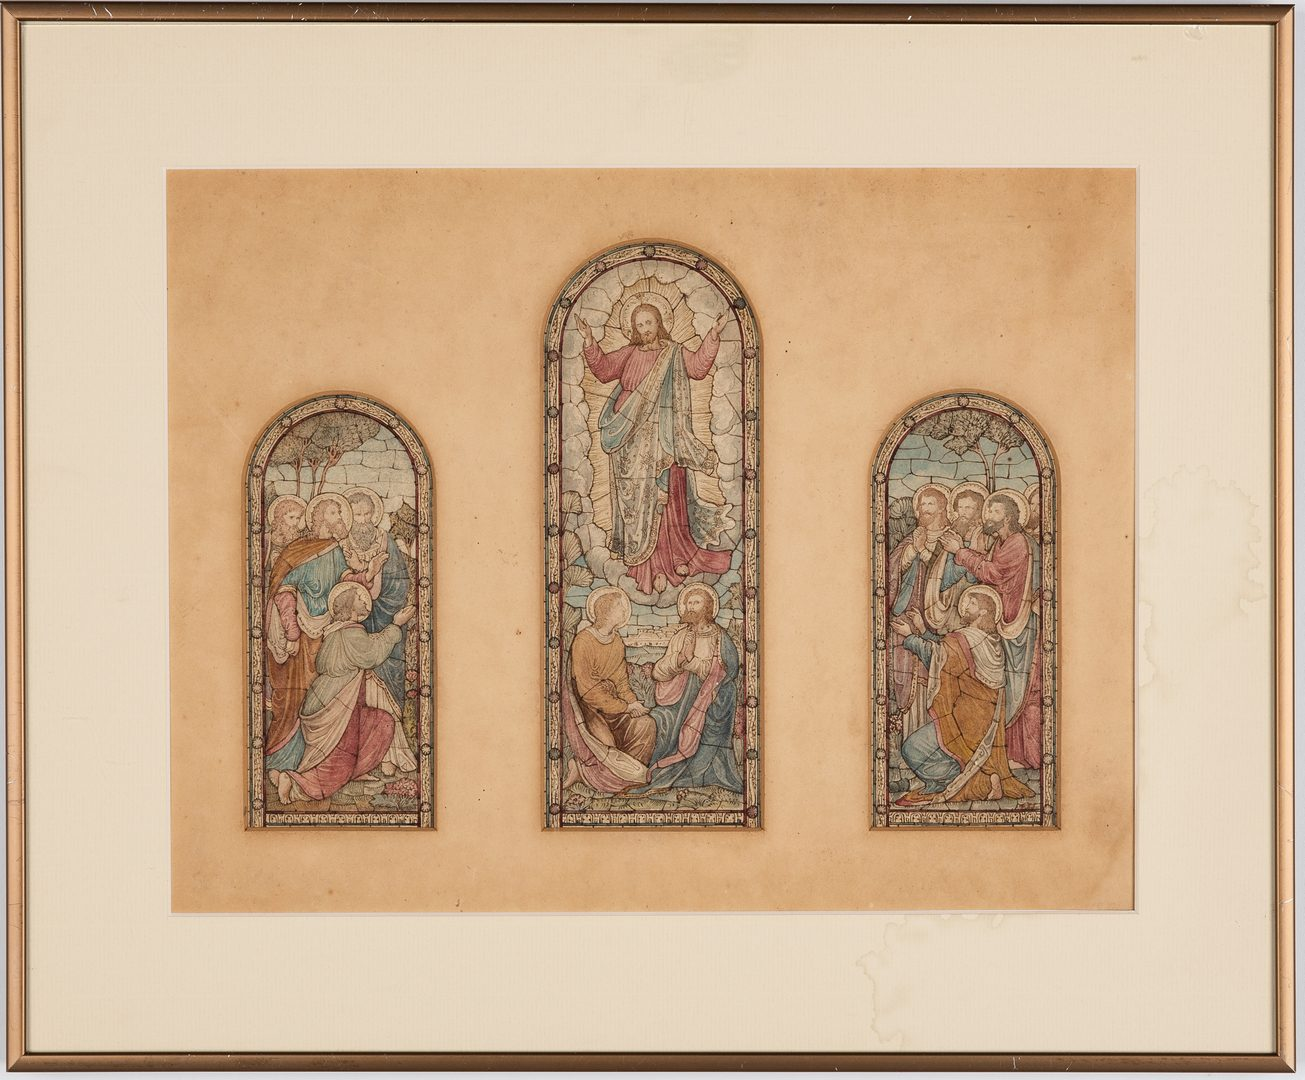 Lot 719: 2 Window Studies attr. Frank Tinney Johnson or Karl Reimann